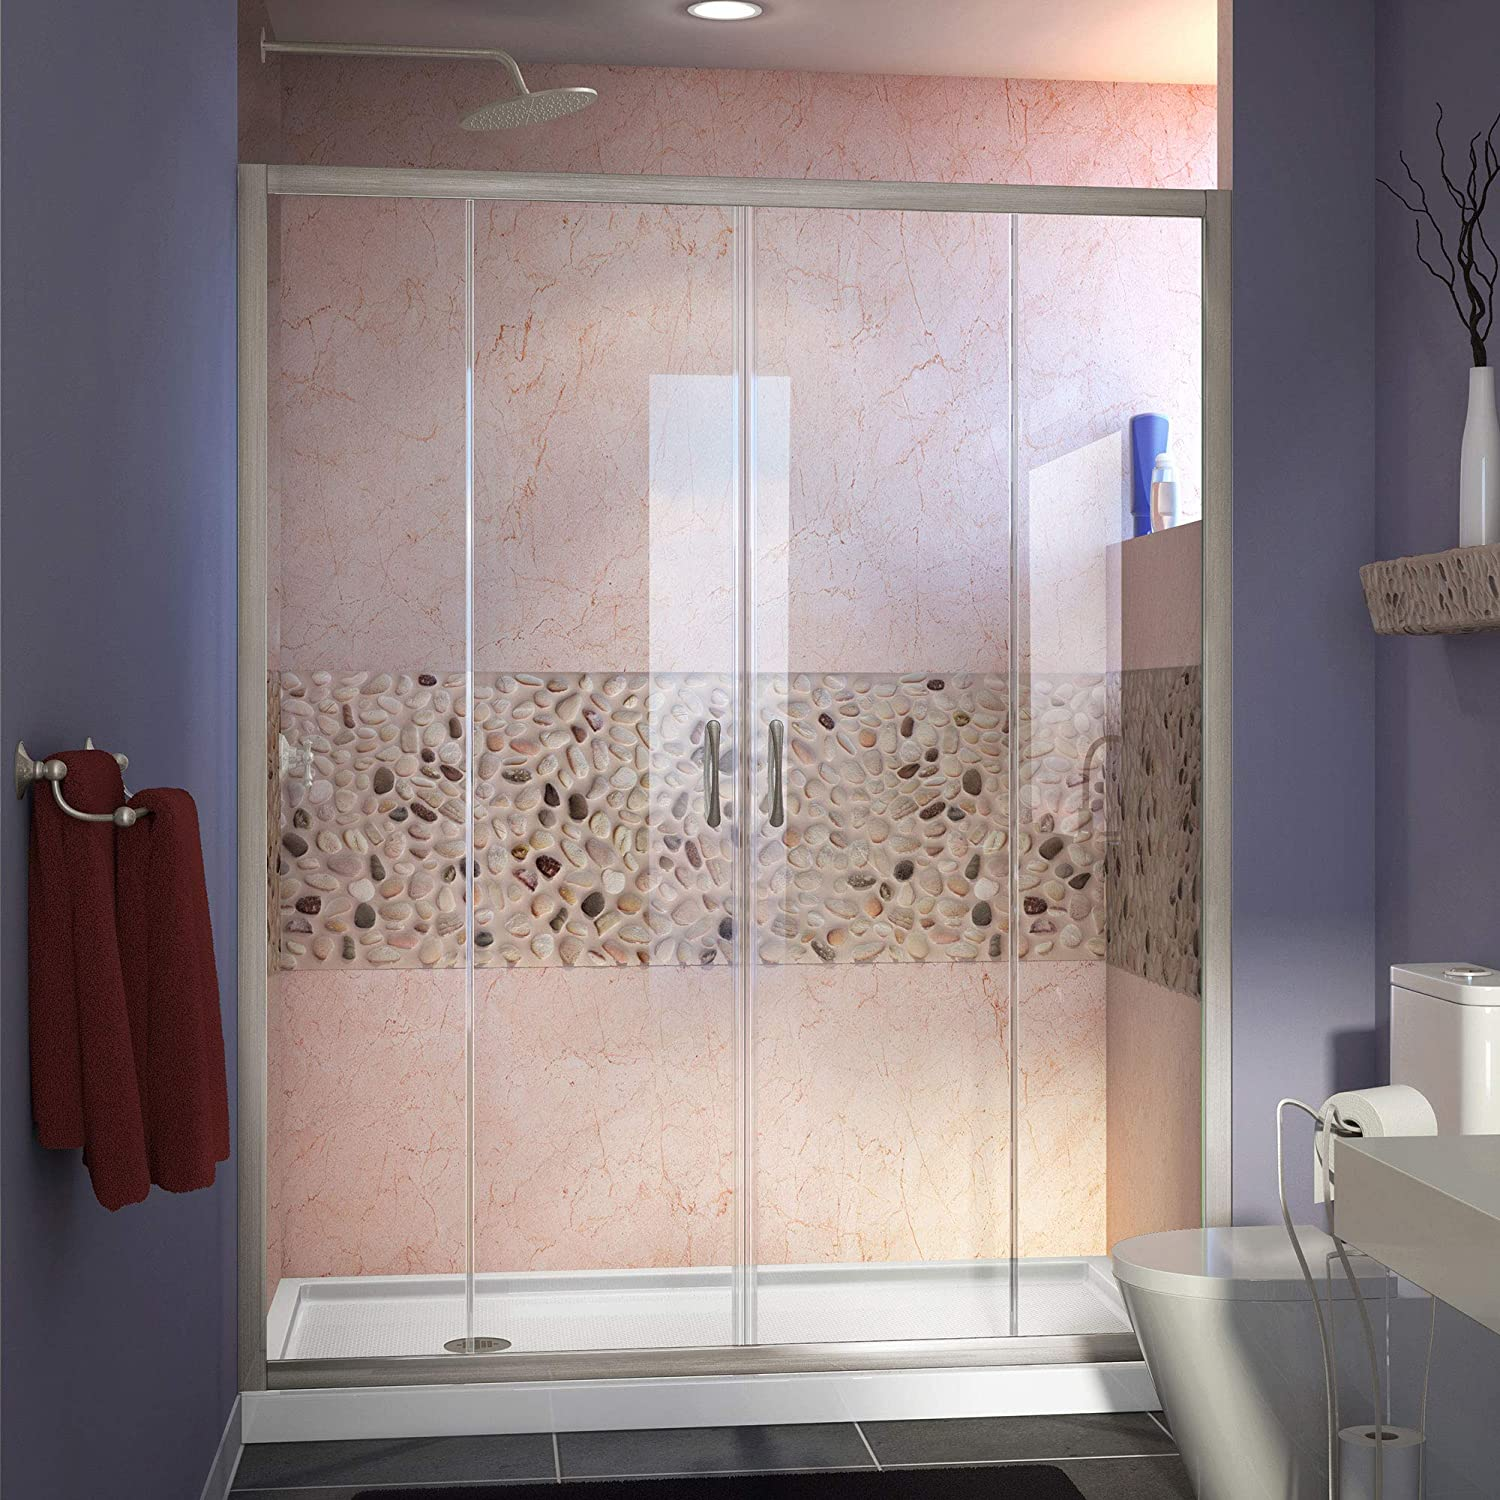 DreamLine DL-6960L-04CL Visions 30 in. D x 60 in. W x 74 3 4 in. H Sliding Door in Brushed Nickel with Left Drain White Shower Base